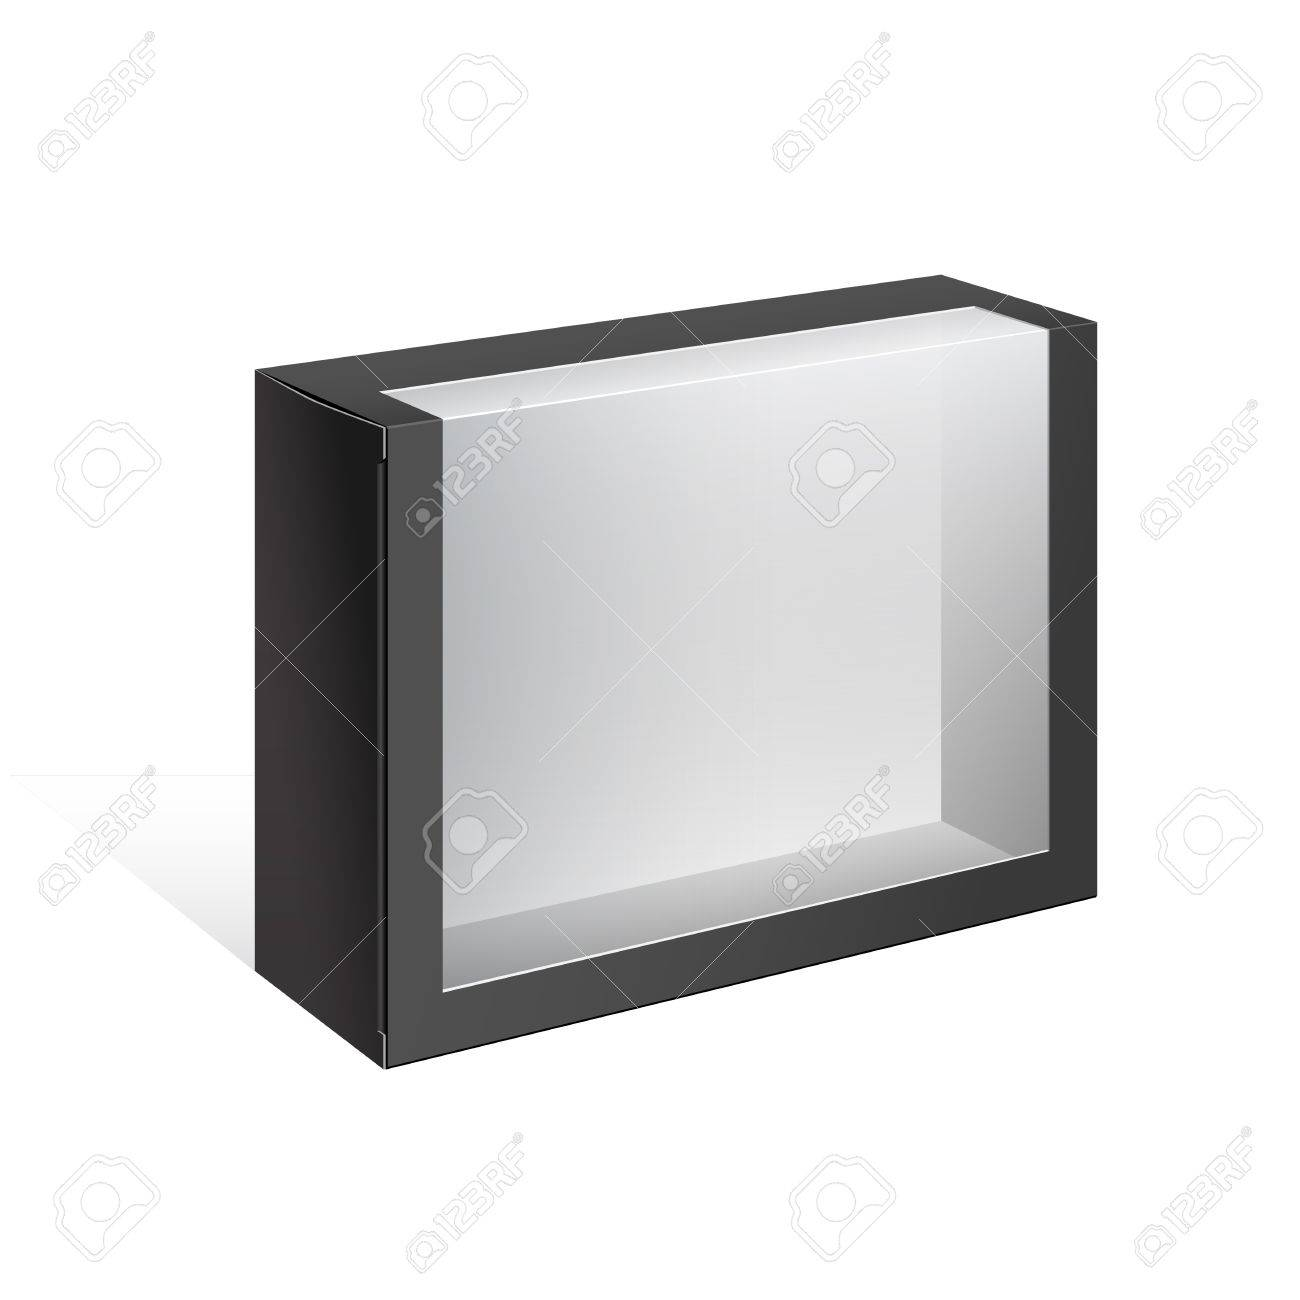 Black Realistic Package Cardboard Box with a transparent plastic window  Vector illustration Stock Vector - 16824328